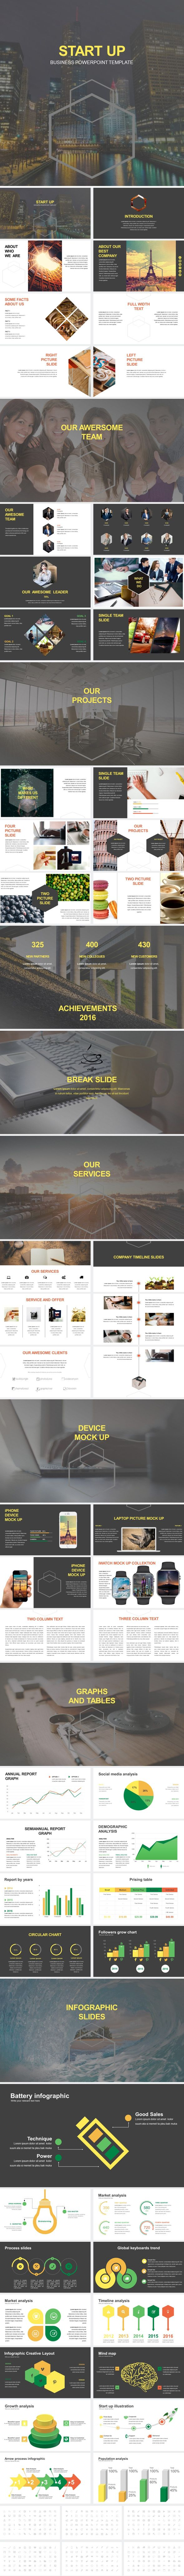 Start Up Business Powerpoint Template #powerpoint #pptx #social media #medicine • Download ➝ https://graphicriver.net/item/start-up-business-powerpoint-template/18704804?ref=pxcr